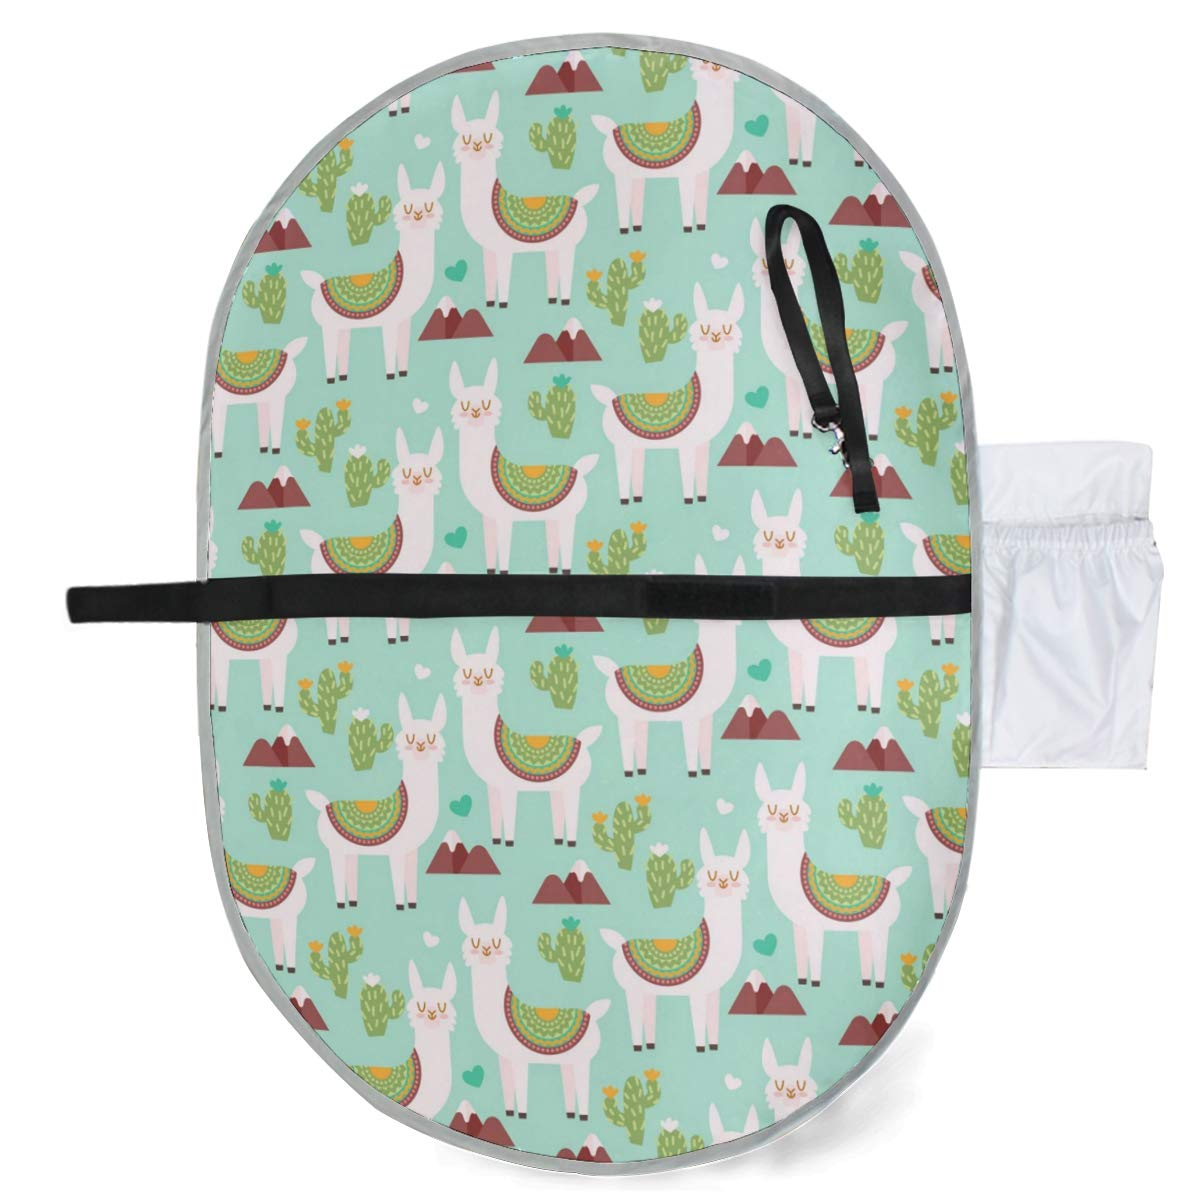 Diaper Bag Mat Waterproof Baby Changing Pad Stroller Strap,Side Pocket for Wipes Diaper| for Infants /& Newborns Portable Diaper Changing Pad Foldable Travel Changing Station